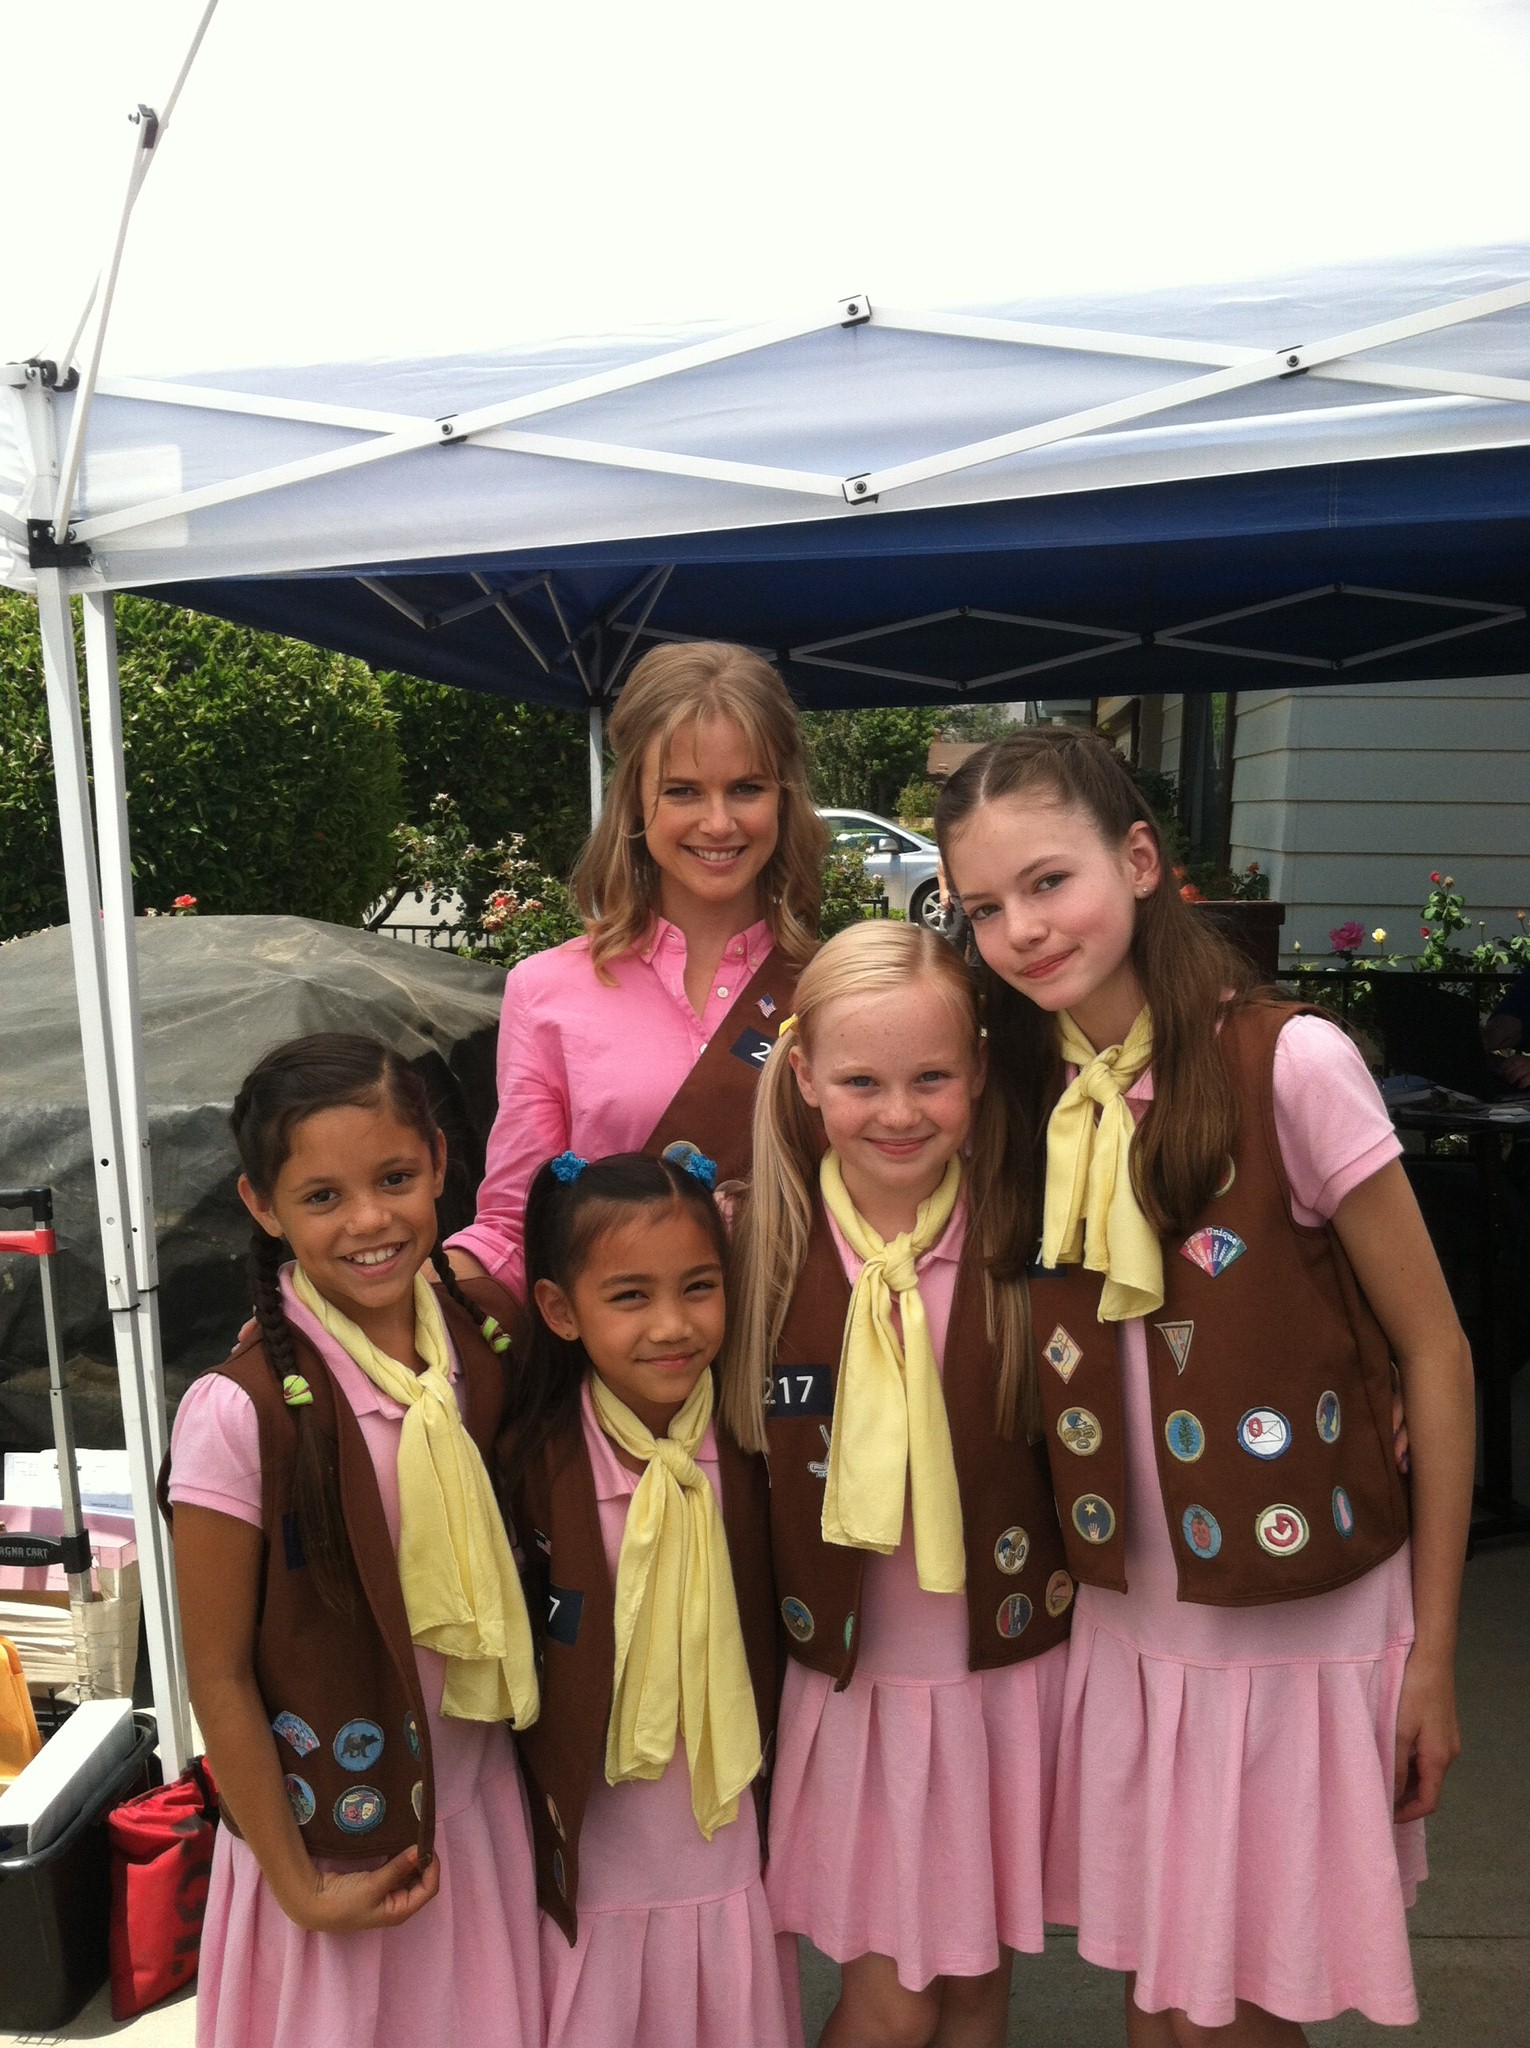 Danielle Parker on the set of The Cookie Mobster with Pippa Black, Mackenzie Foy, Jenna Ortega and Cheyenne Nguyen